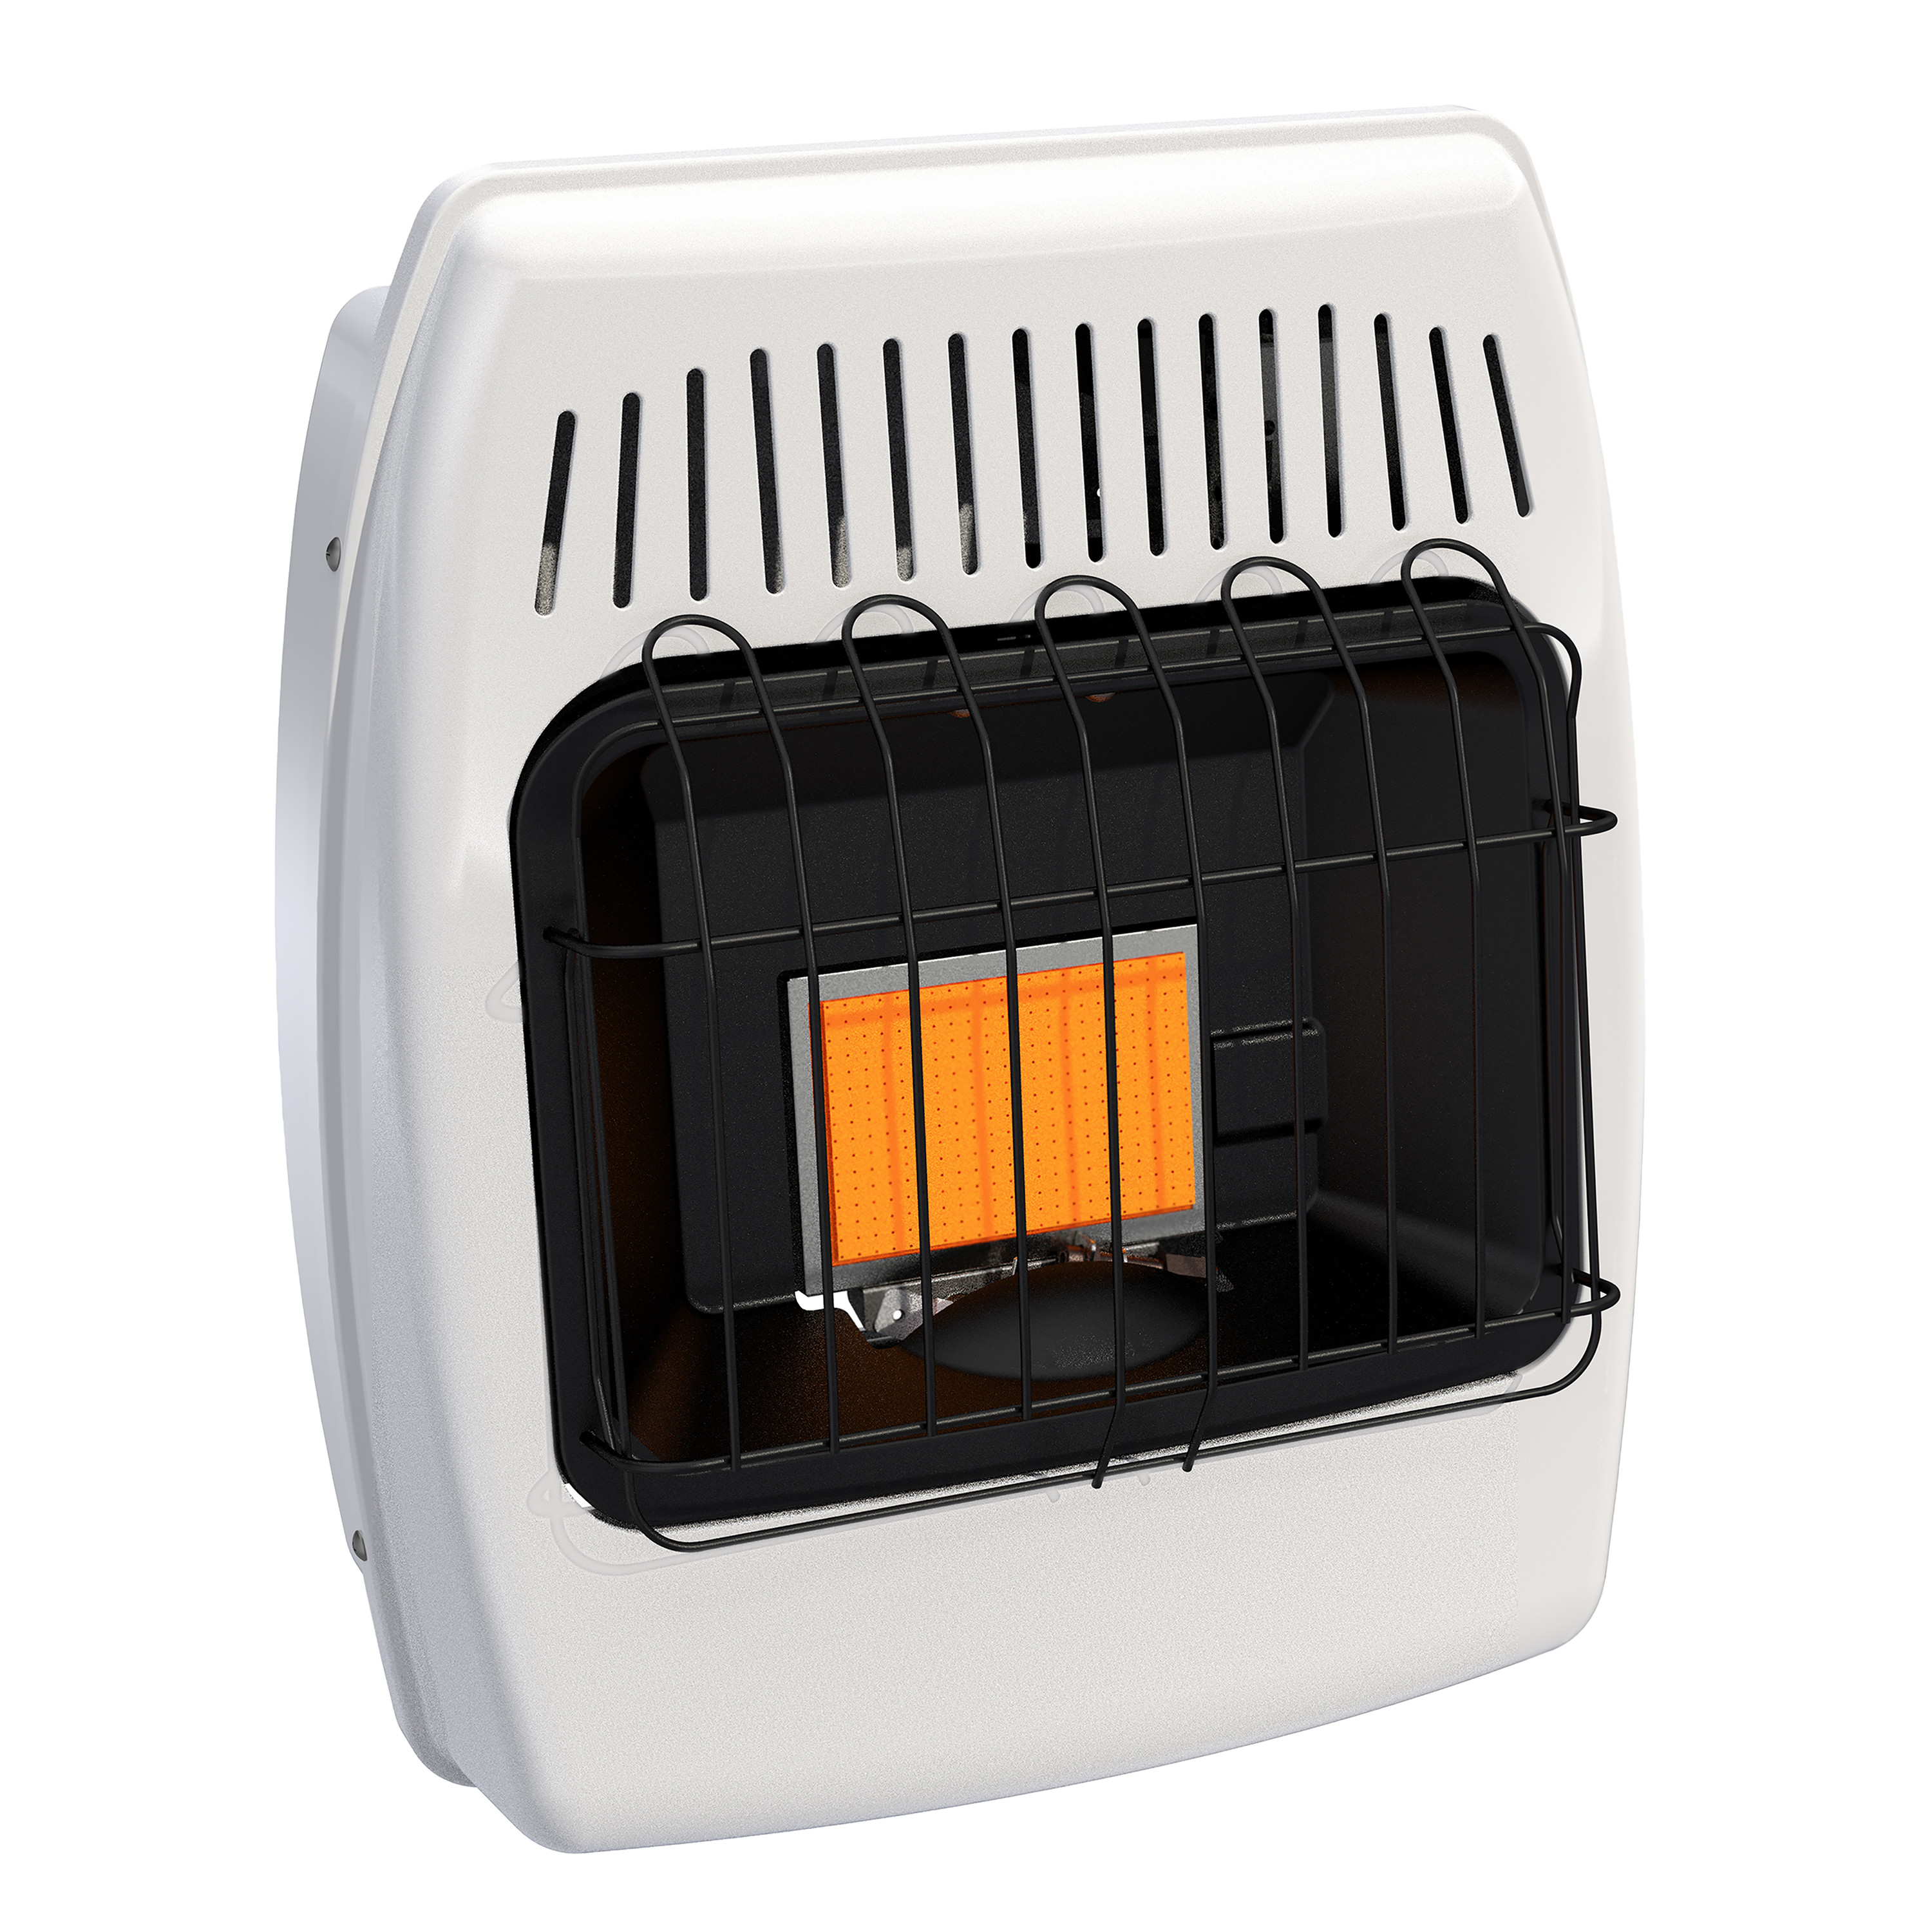 Dyna Glo 6 000 Btu Natural Gas Infrared Vent Free Wall